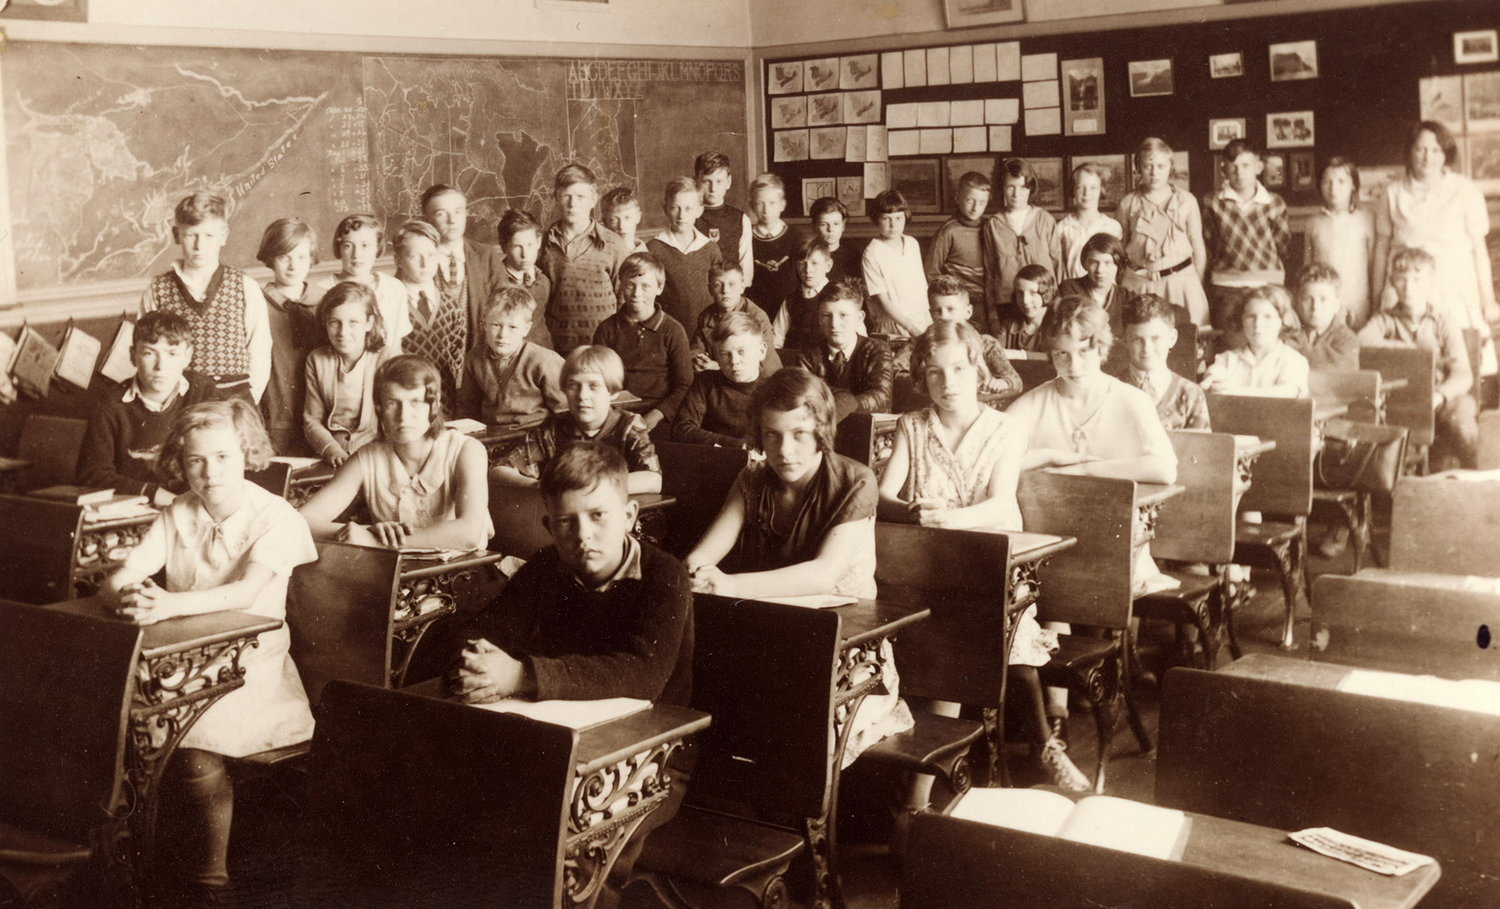 Mrs. Mason's Sr. Third grade class Queen Alexandra School, Broadview Ave, 1930